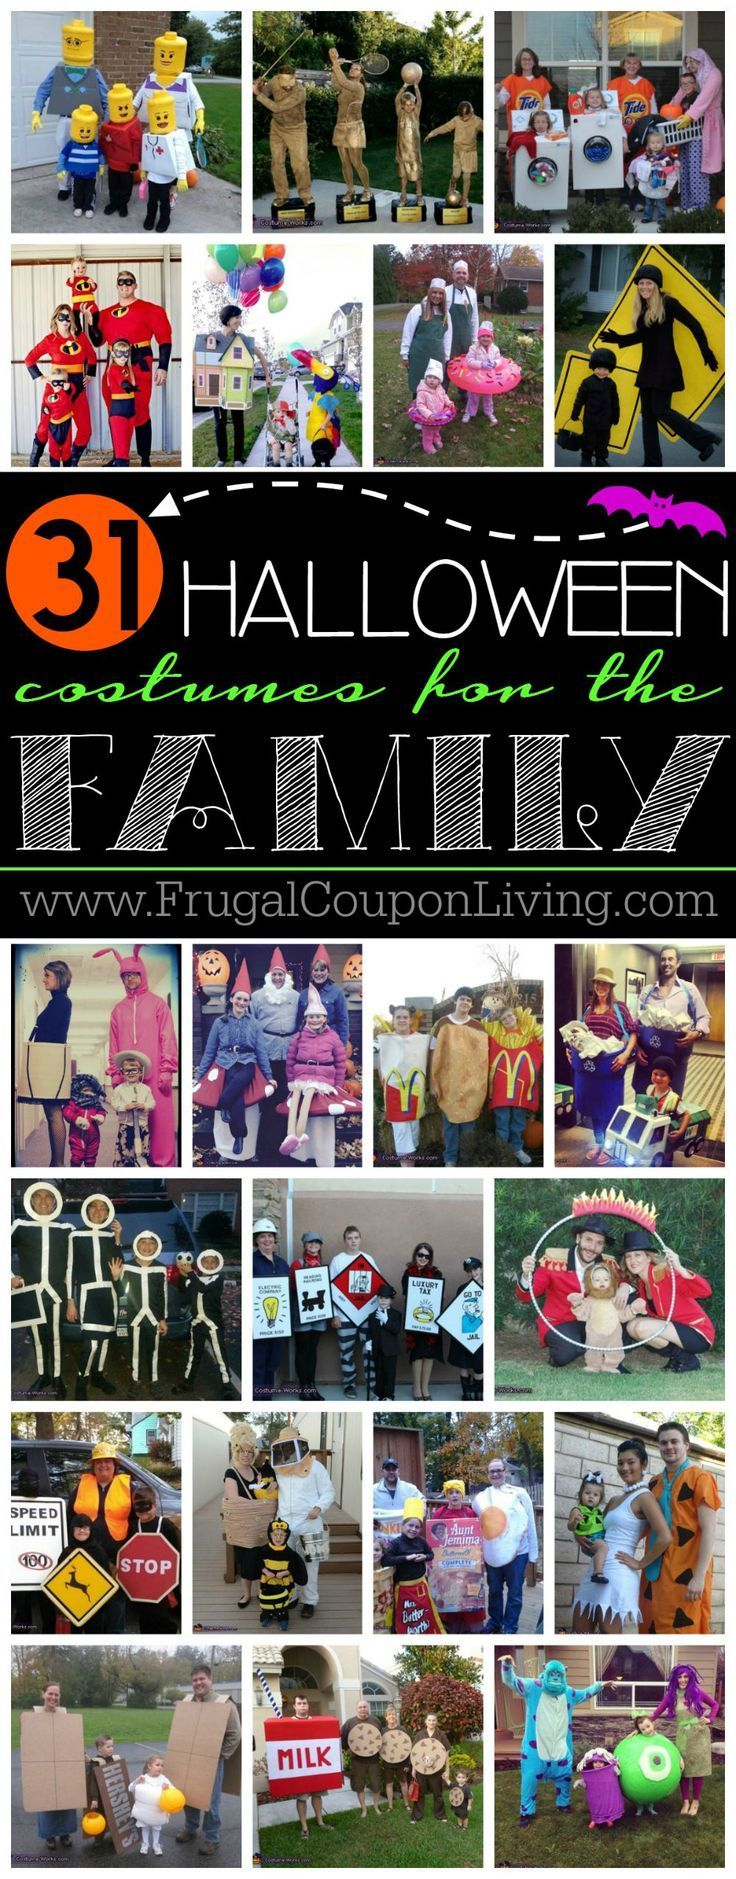 31 Family Halloween Costume Ideas and Where to Buy on Frugal Coupon Living - some of these Halloween Costumes for the Family are very easy, some a bit more challenging and creative costumes.